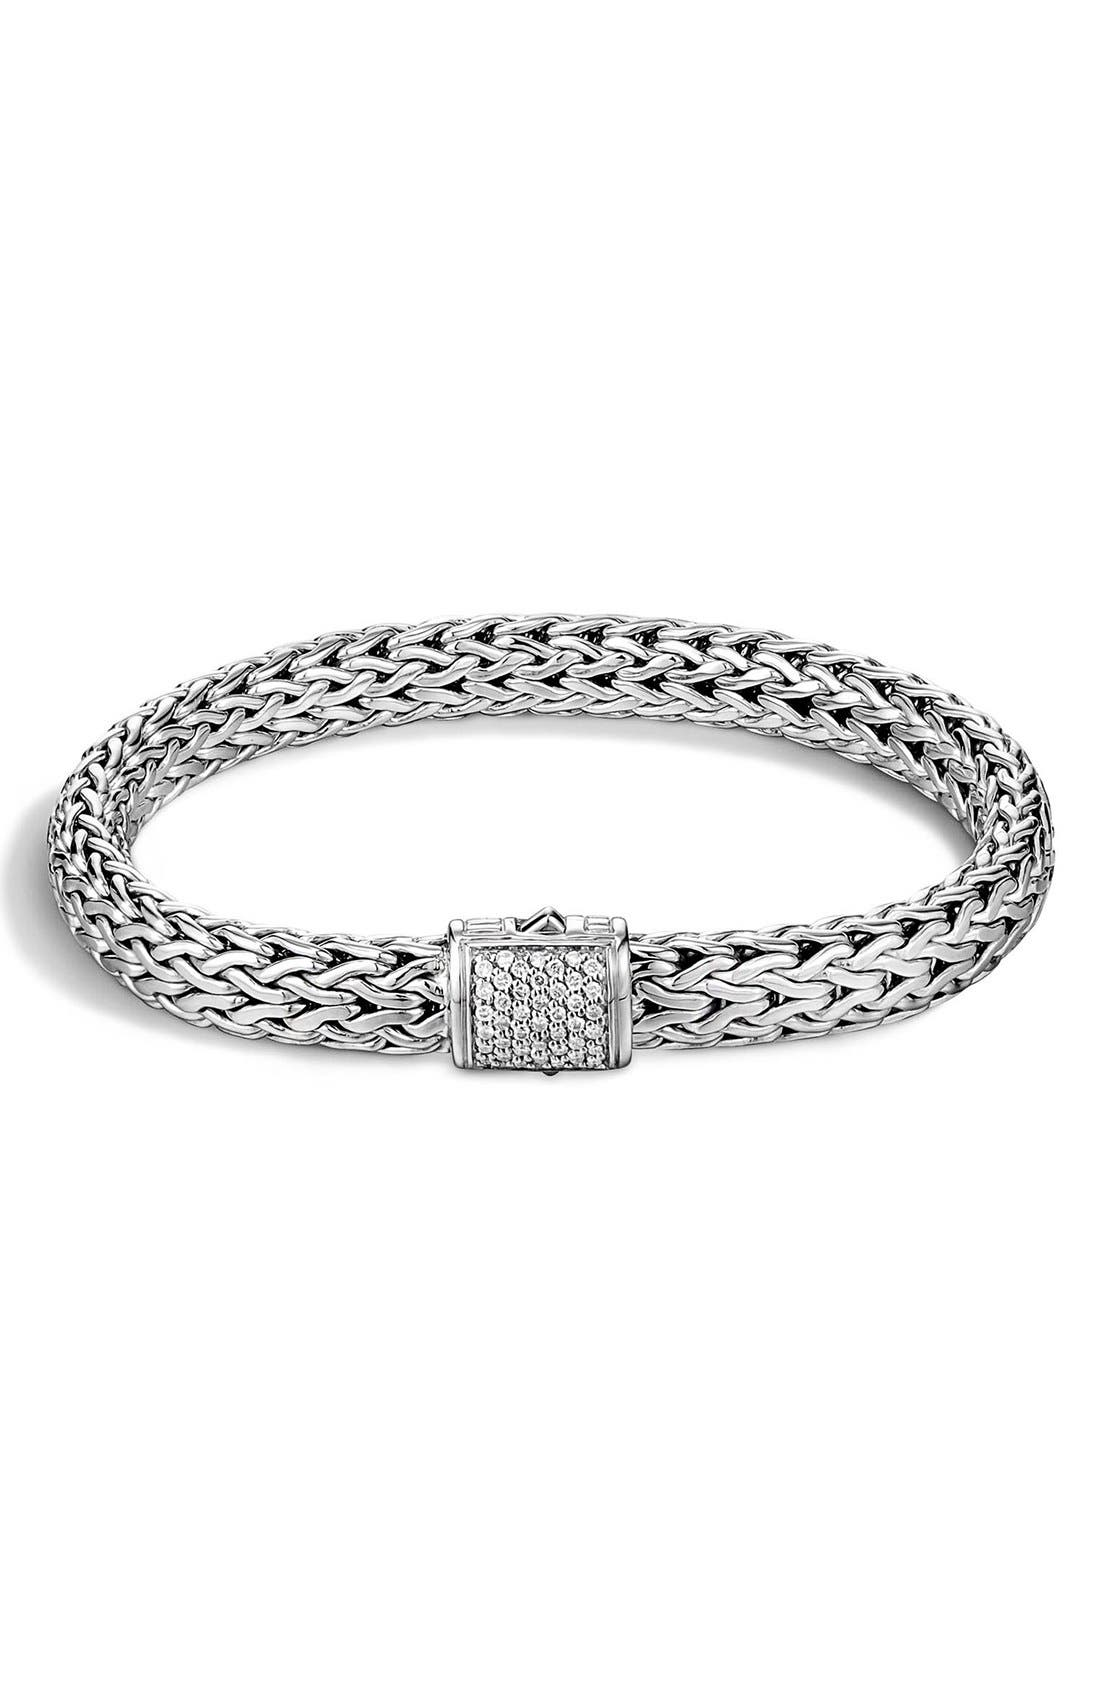 Main Image - John Hardy Classic Chain 7.5mm Diamond Bracelet